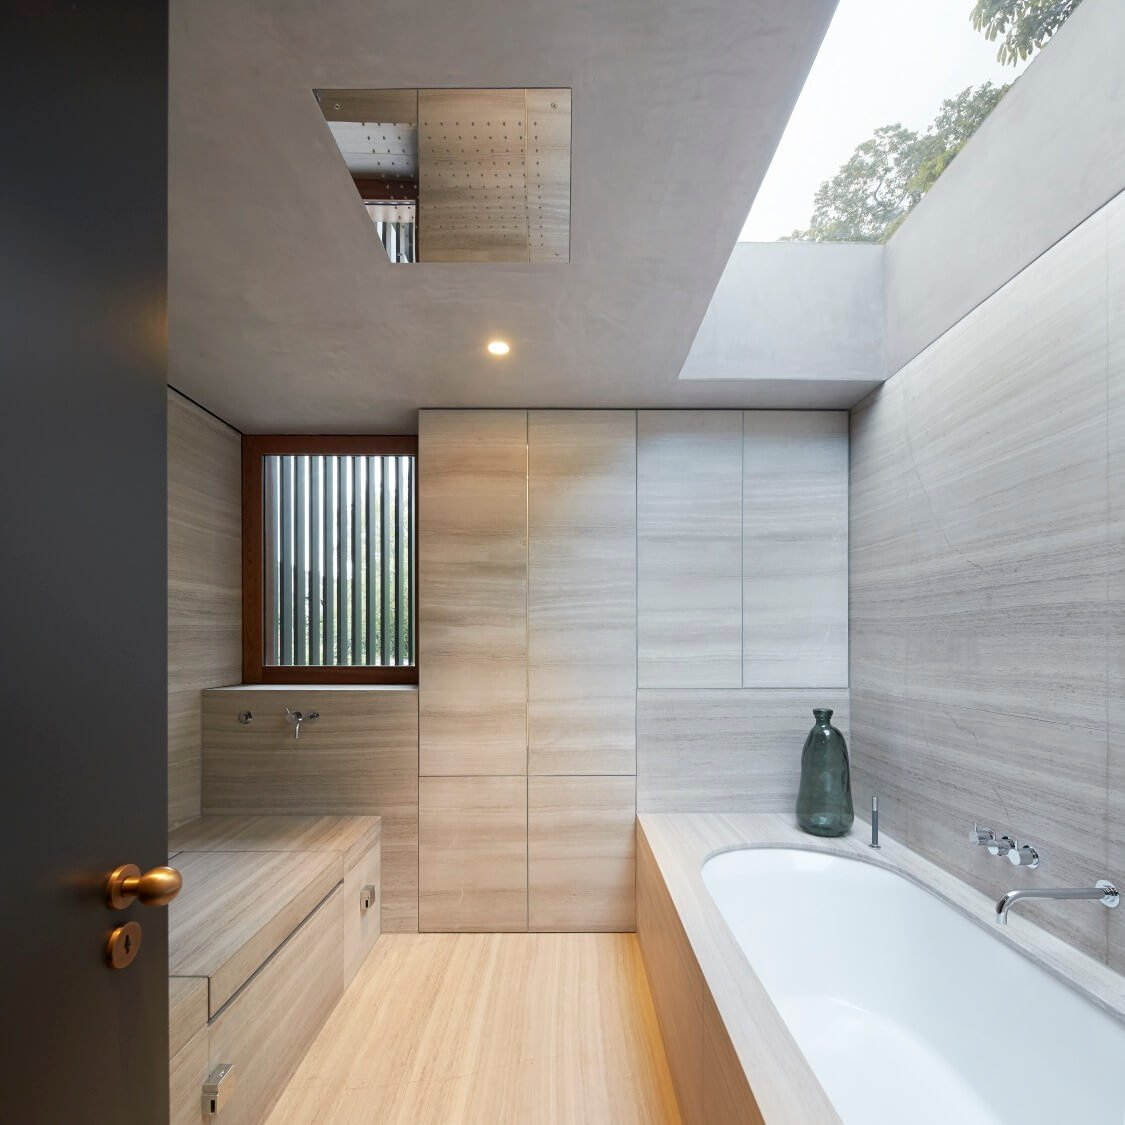 Bathroom is awash in rich marble from the floor up, glowing in natural light via skylight. The design includes a rainfall shower head at center, for a completely open shower design.